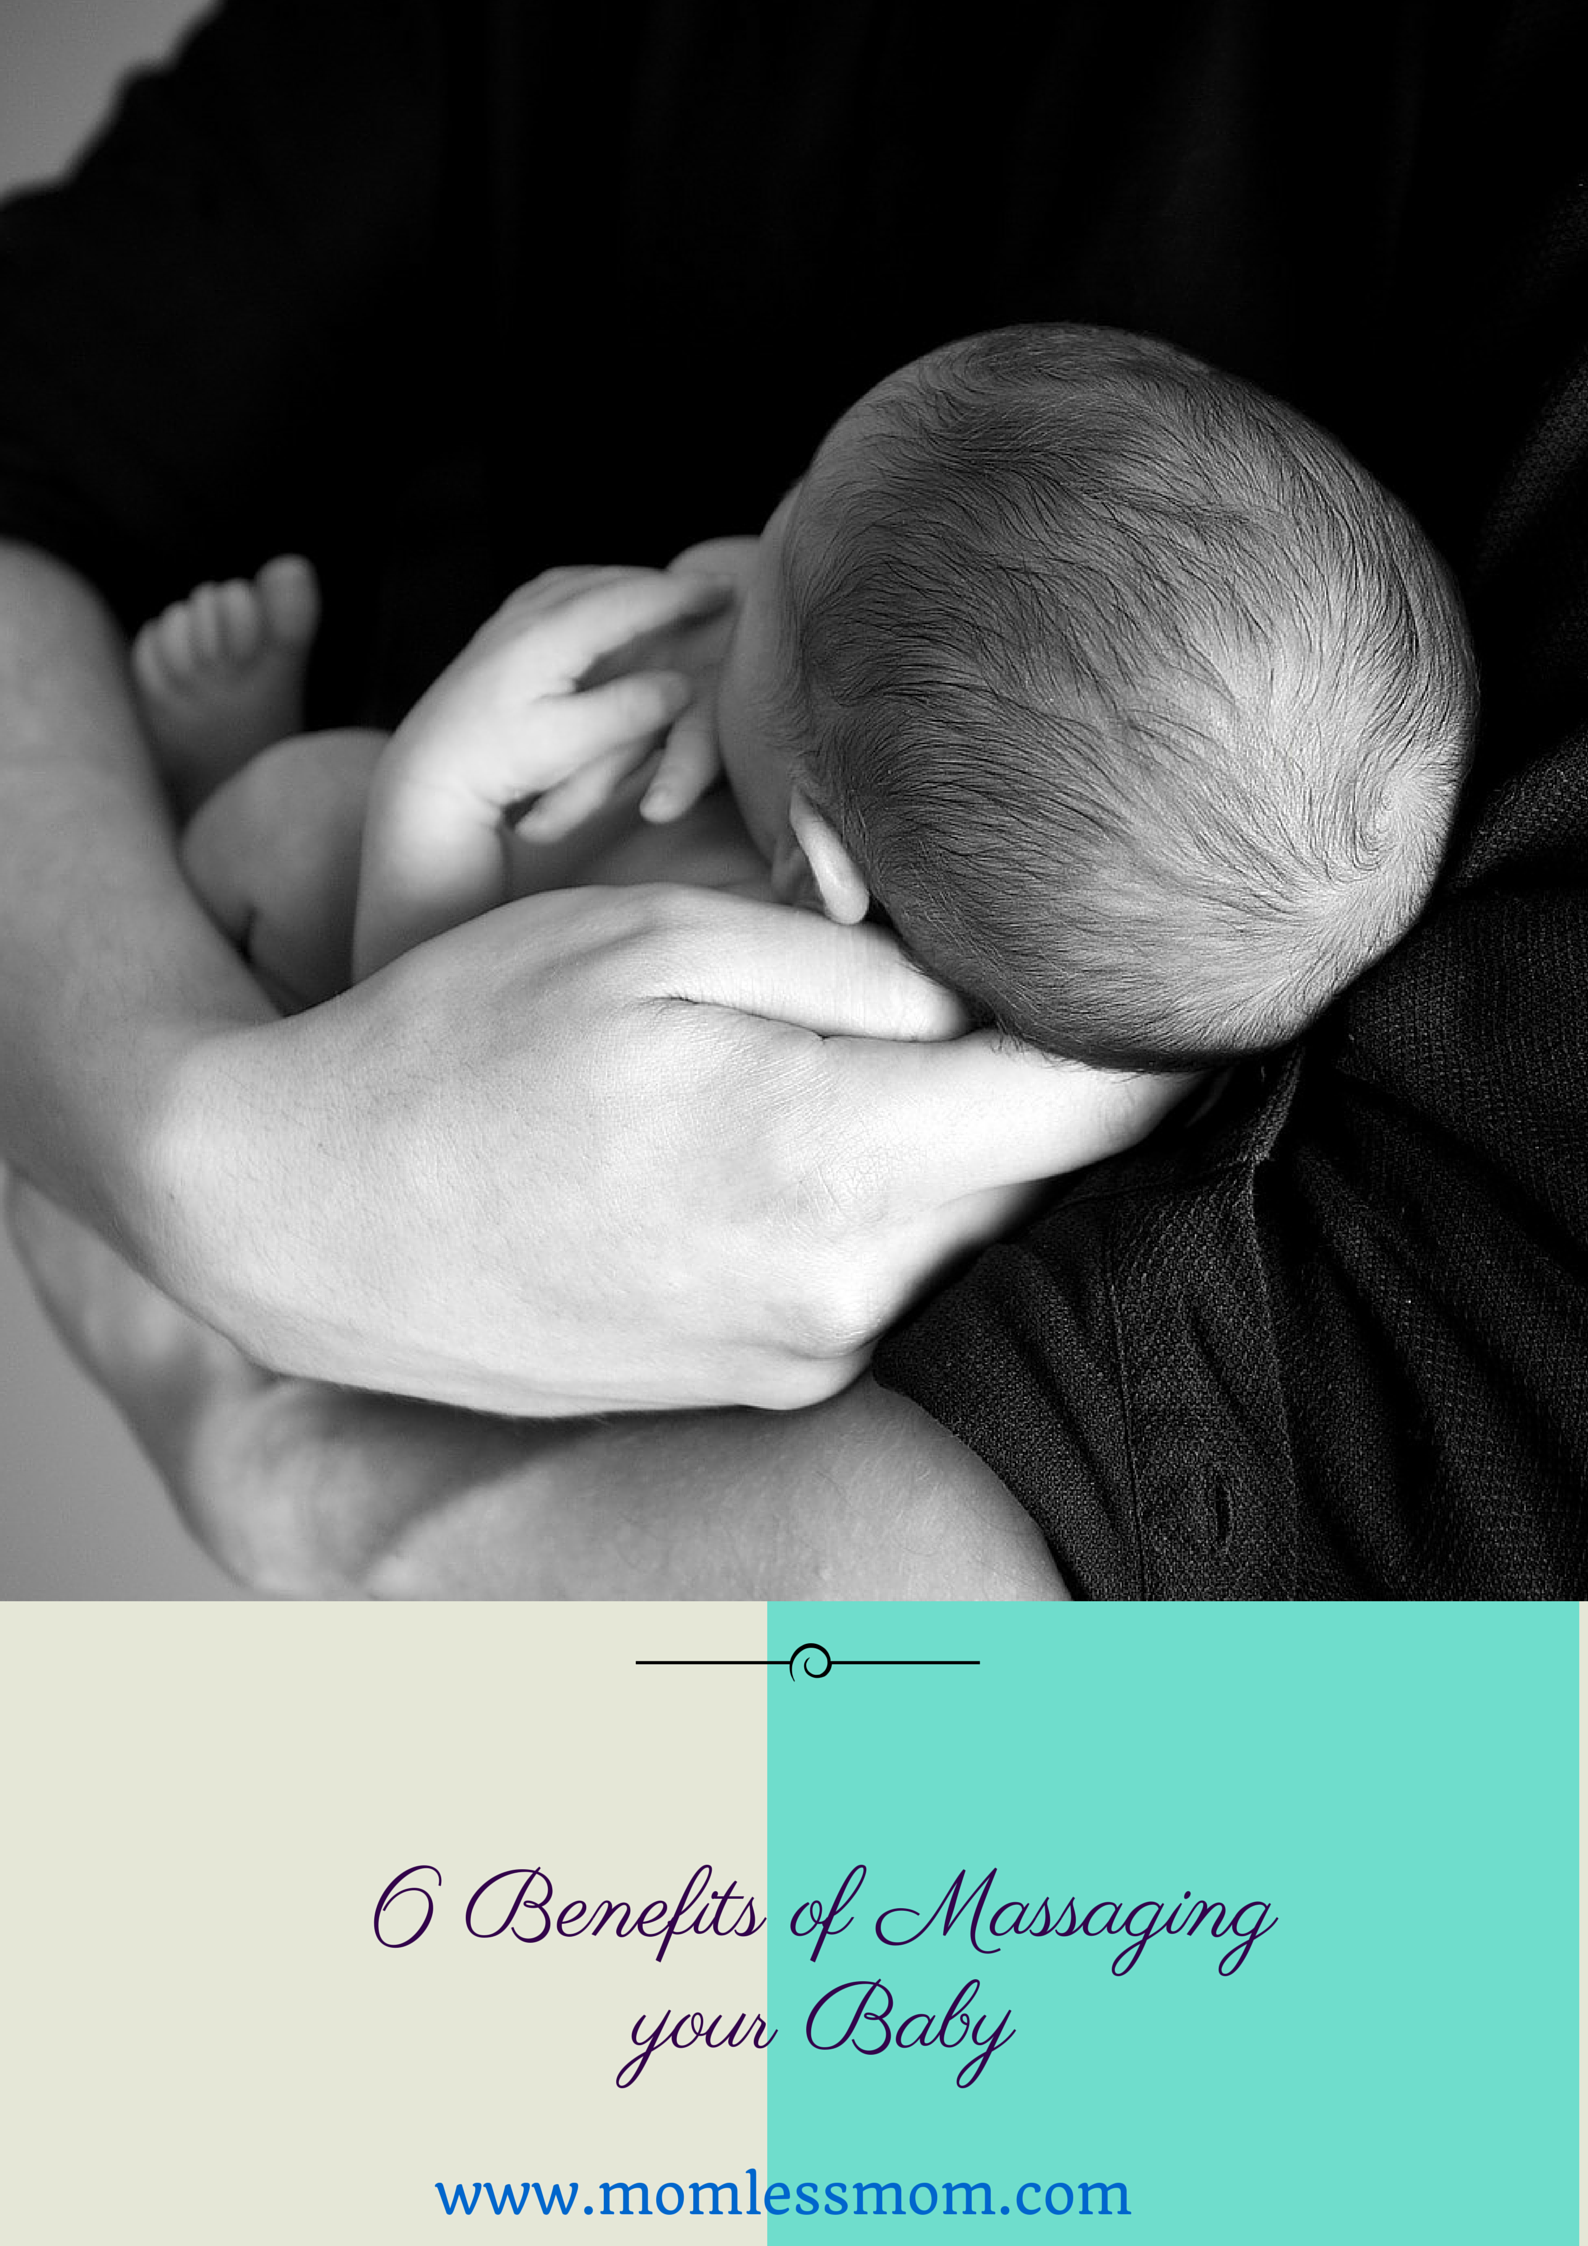 6 Benefits of Massaging your Baby